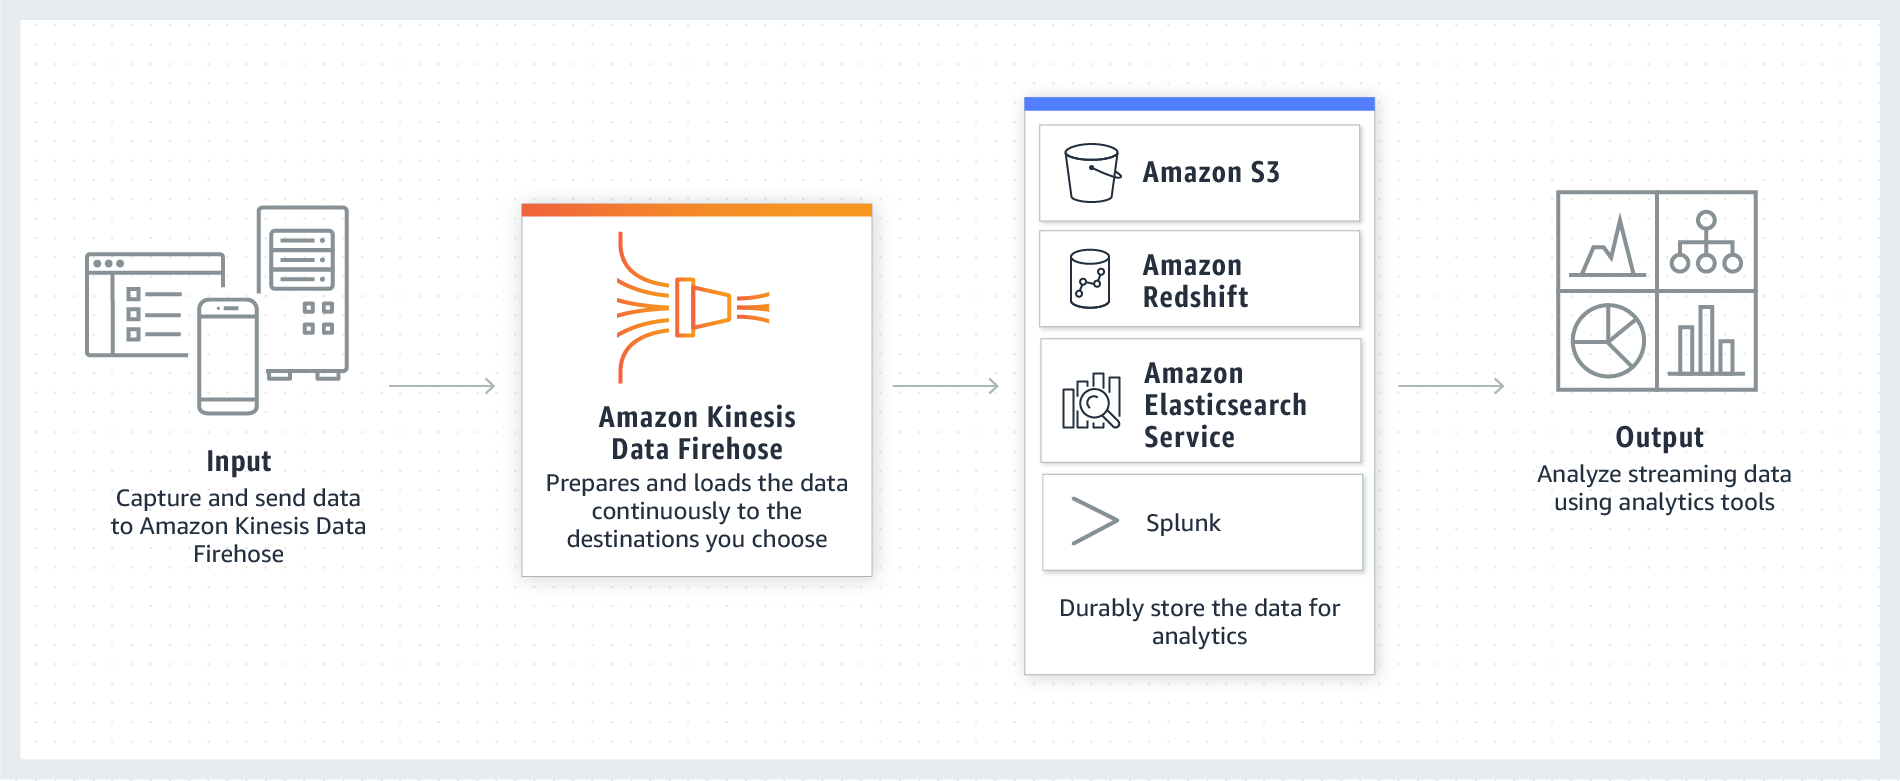 Amazon Kinesis Data Firehose